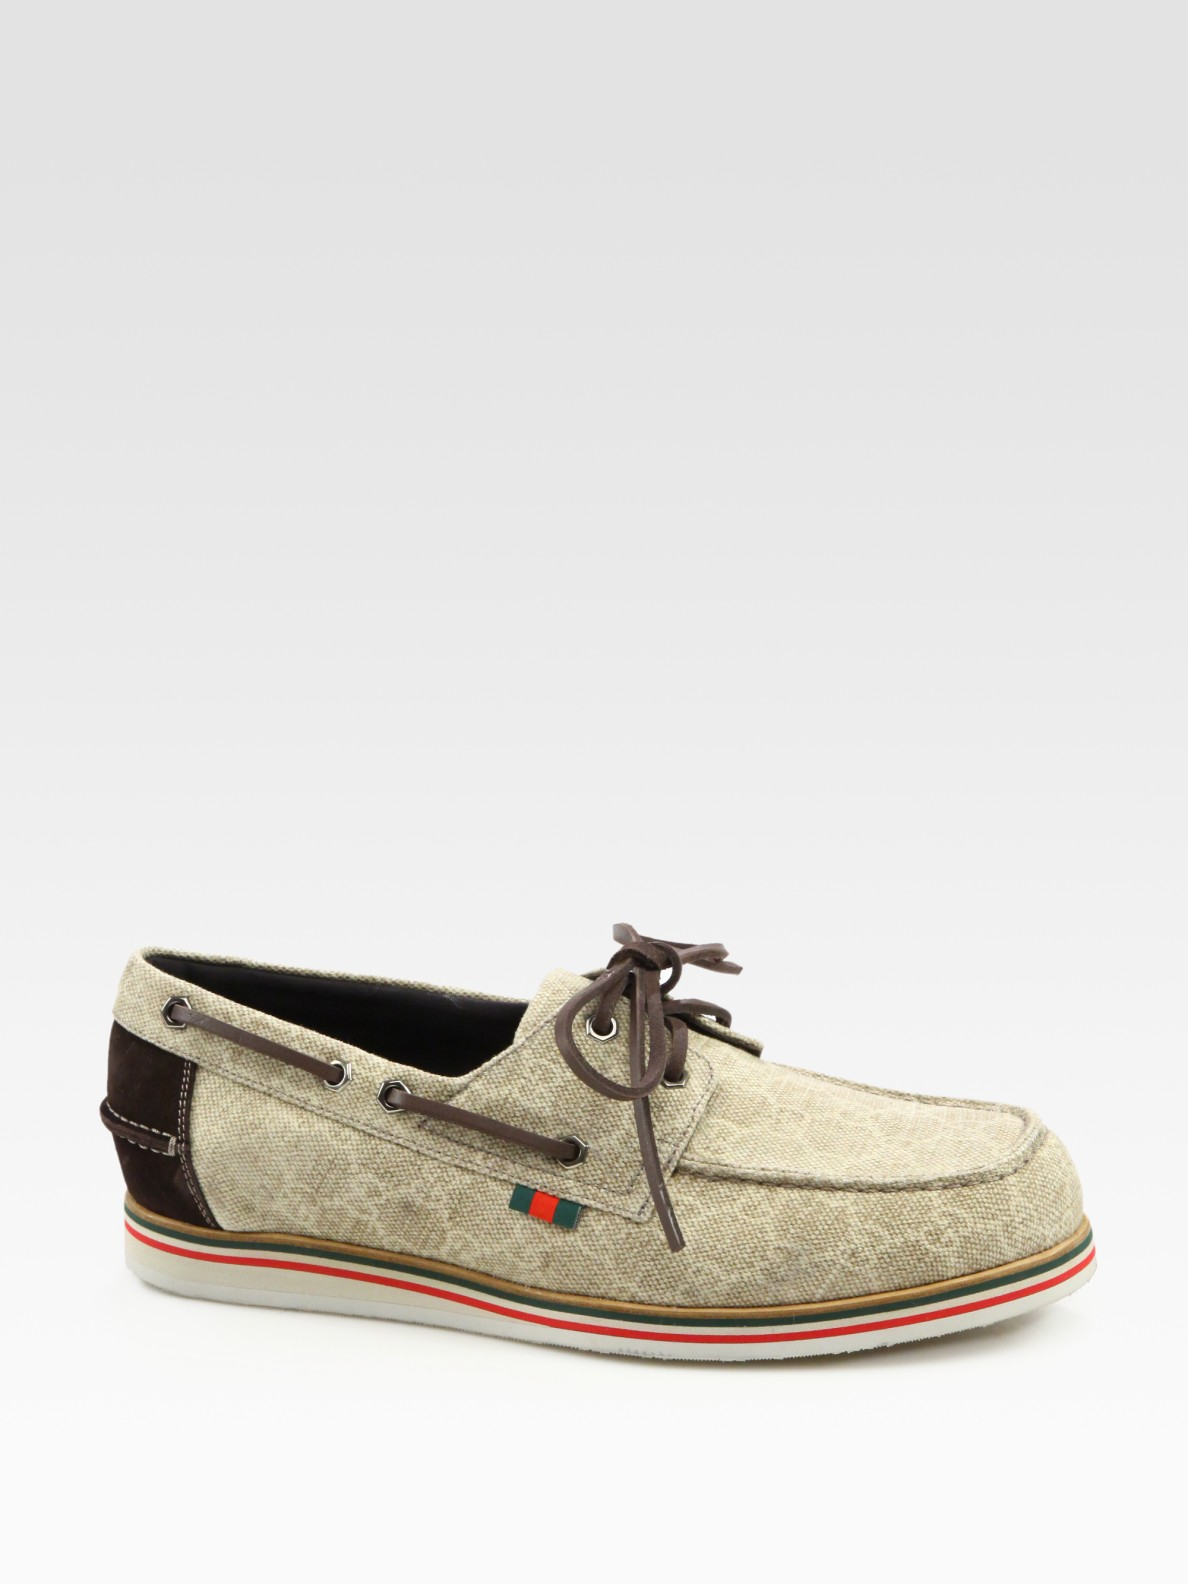 Lyst - Gucci Limerick Boat Shoe in Natural for Men c880b870b4f